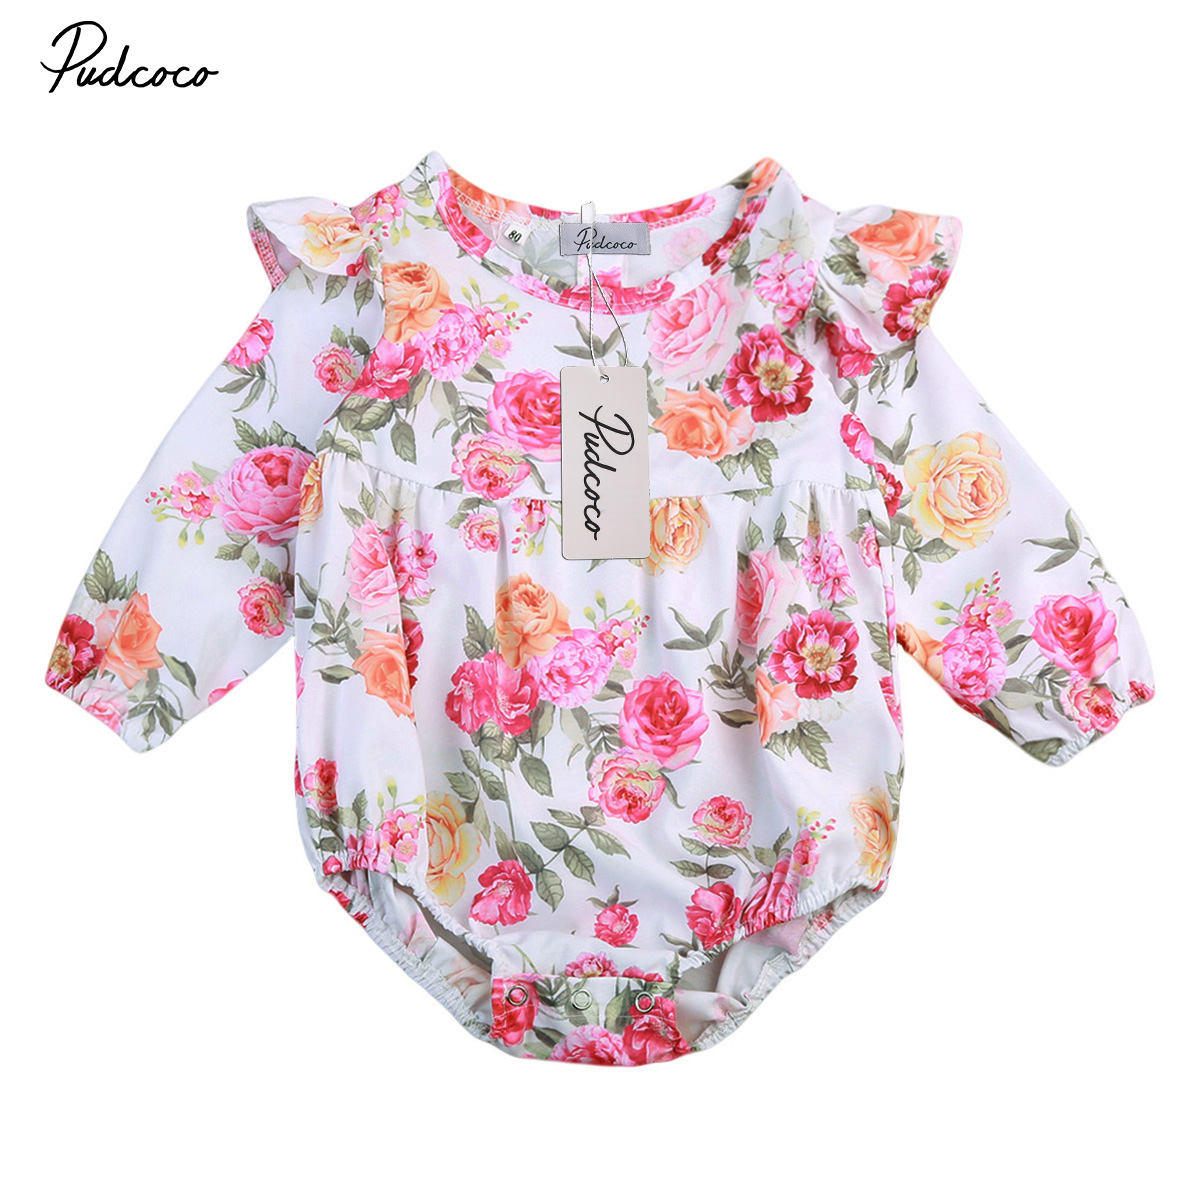 Flower Baby Girl Clothing Newborn Baby Girls Long Sleeeve Floral Romper Jumpsuit 2017 Brand NEW Fashion Clothes Outfits 0-2T